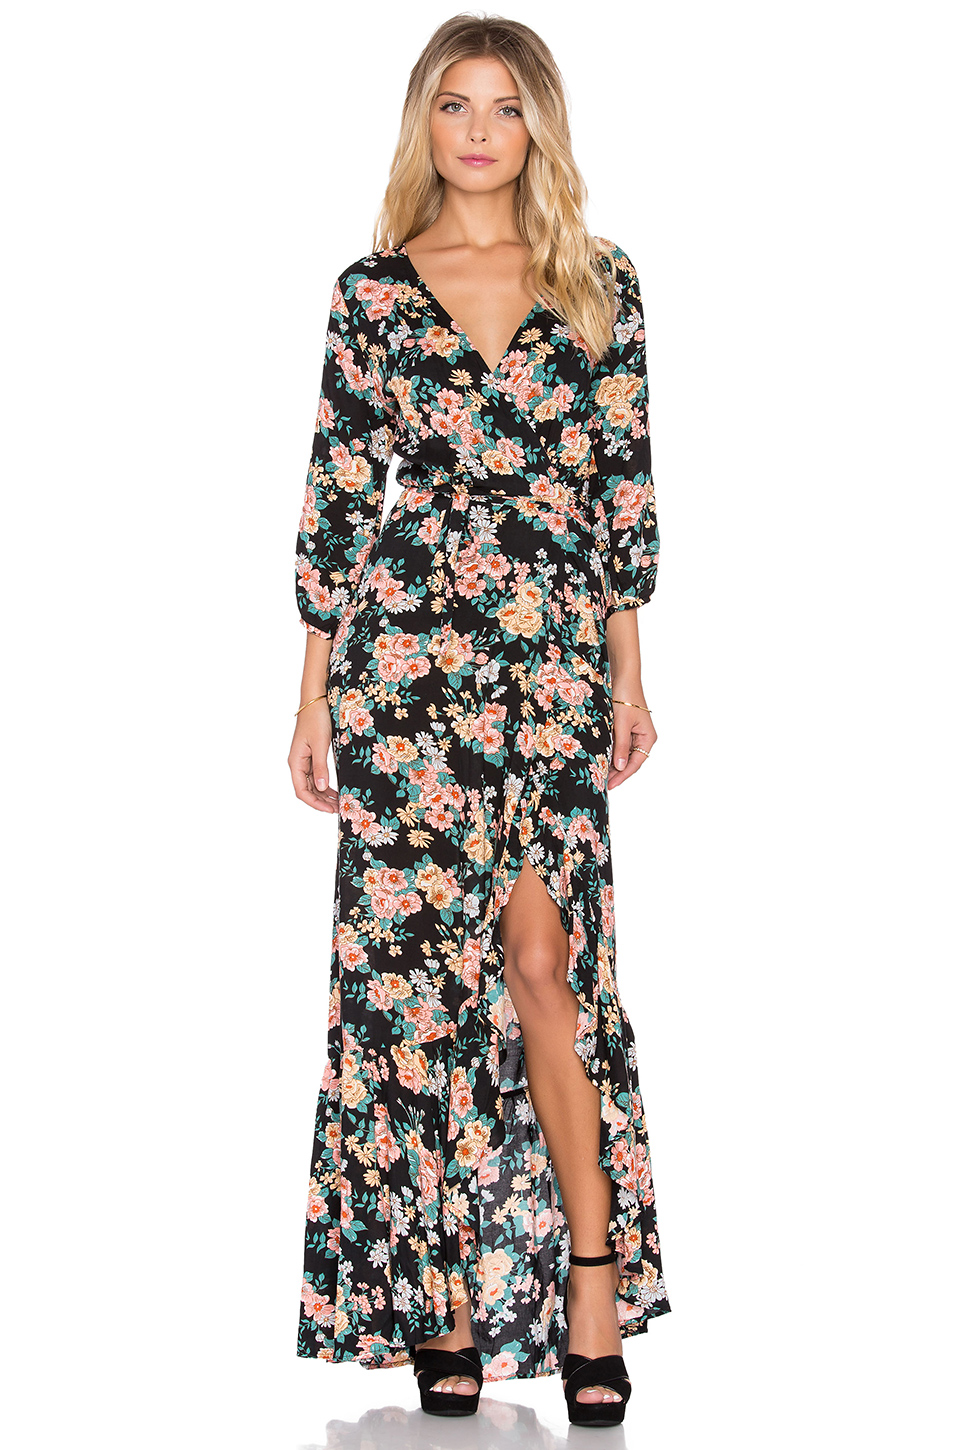 Pretty Wrap Dresses for Spring Flings - Revolve Auguste Wandering Willow Wrap Maxi Dress